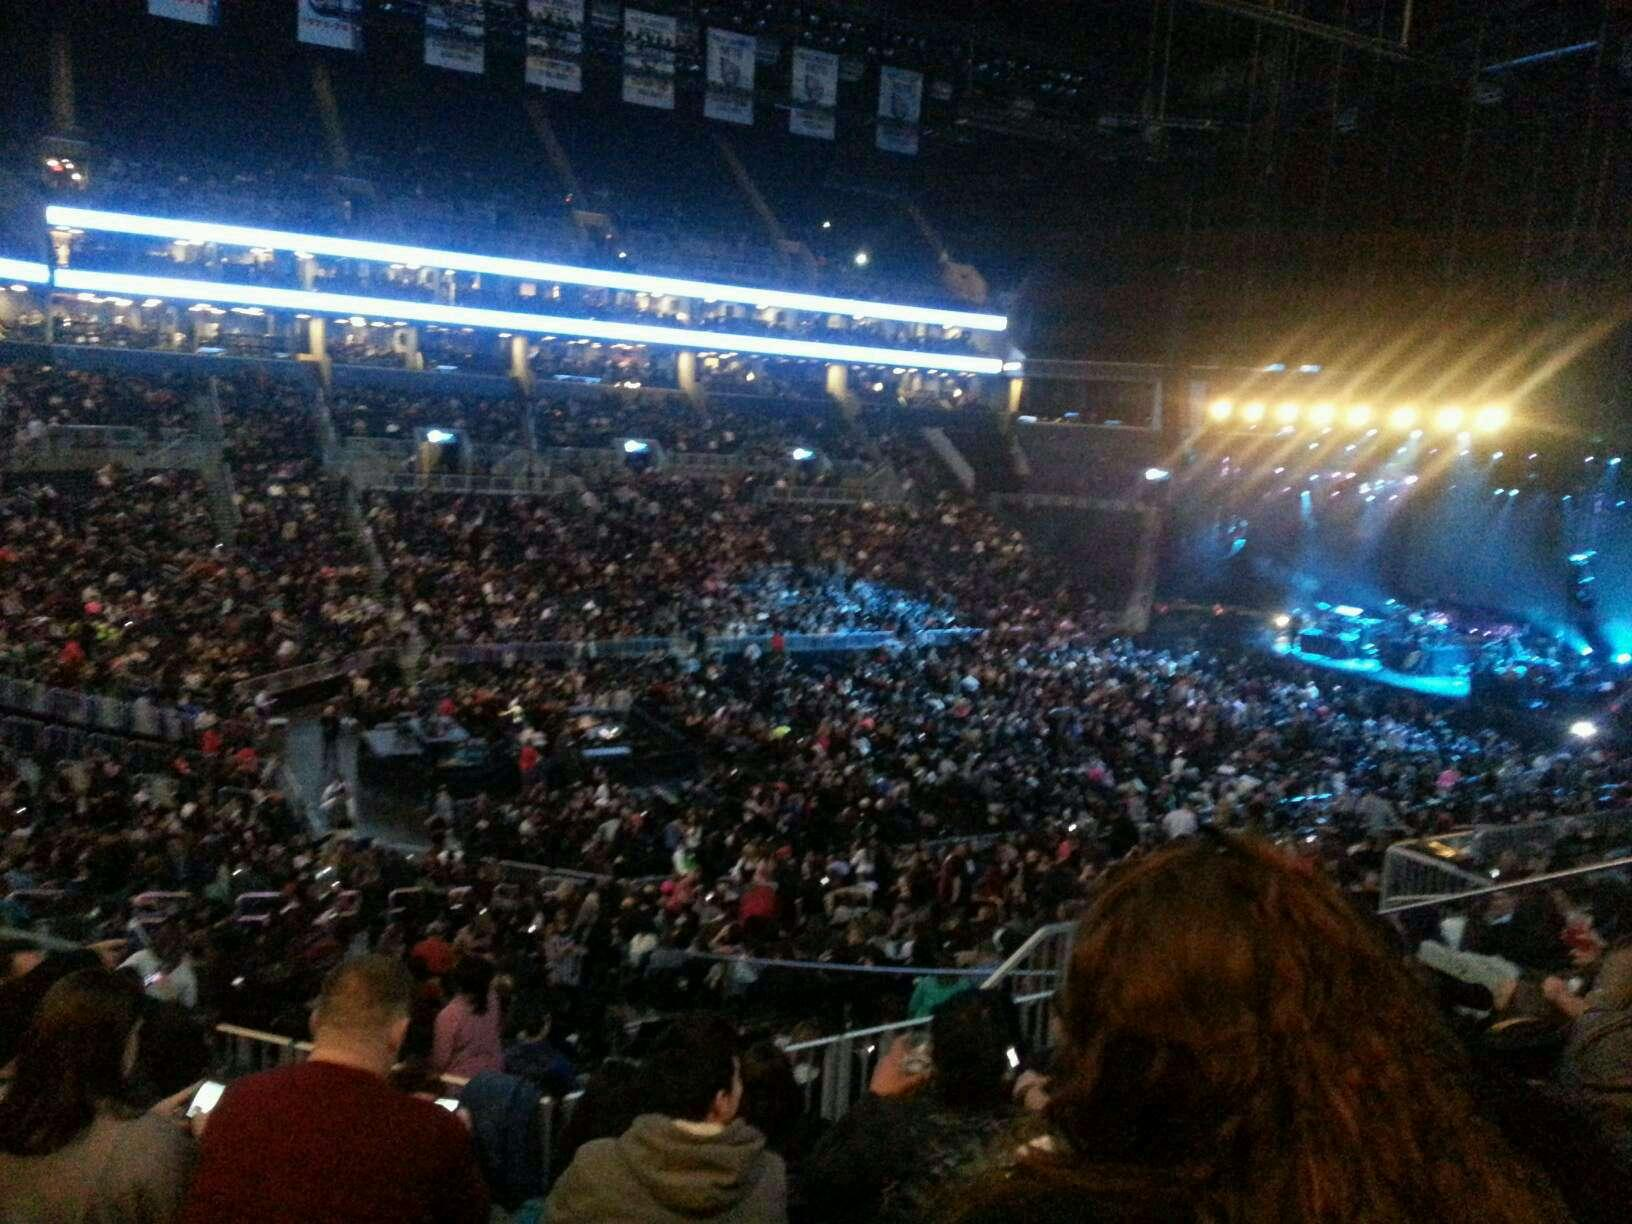 Barclays Center Section 111 Row 9 Seat 13